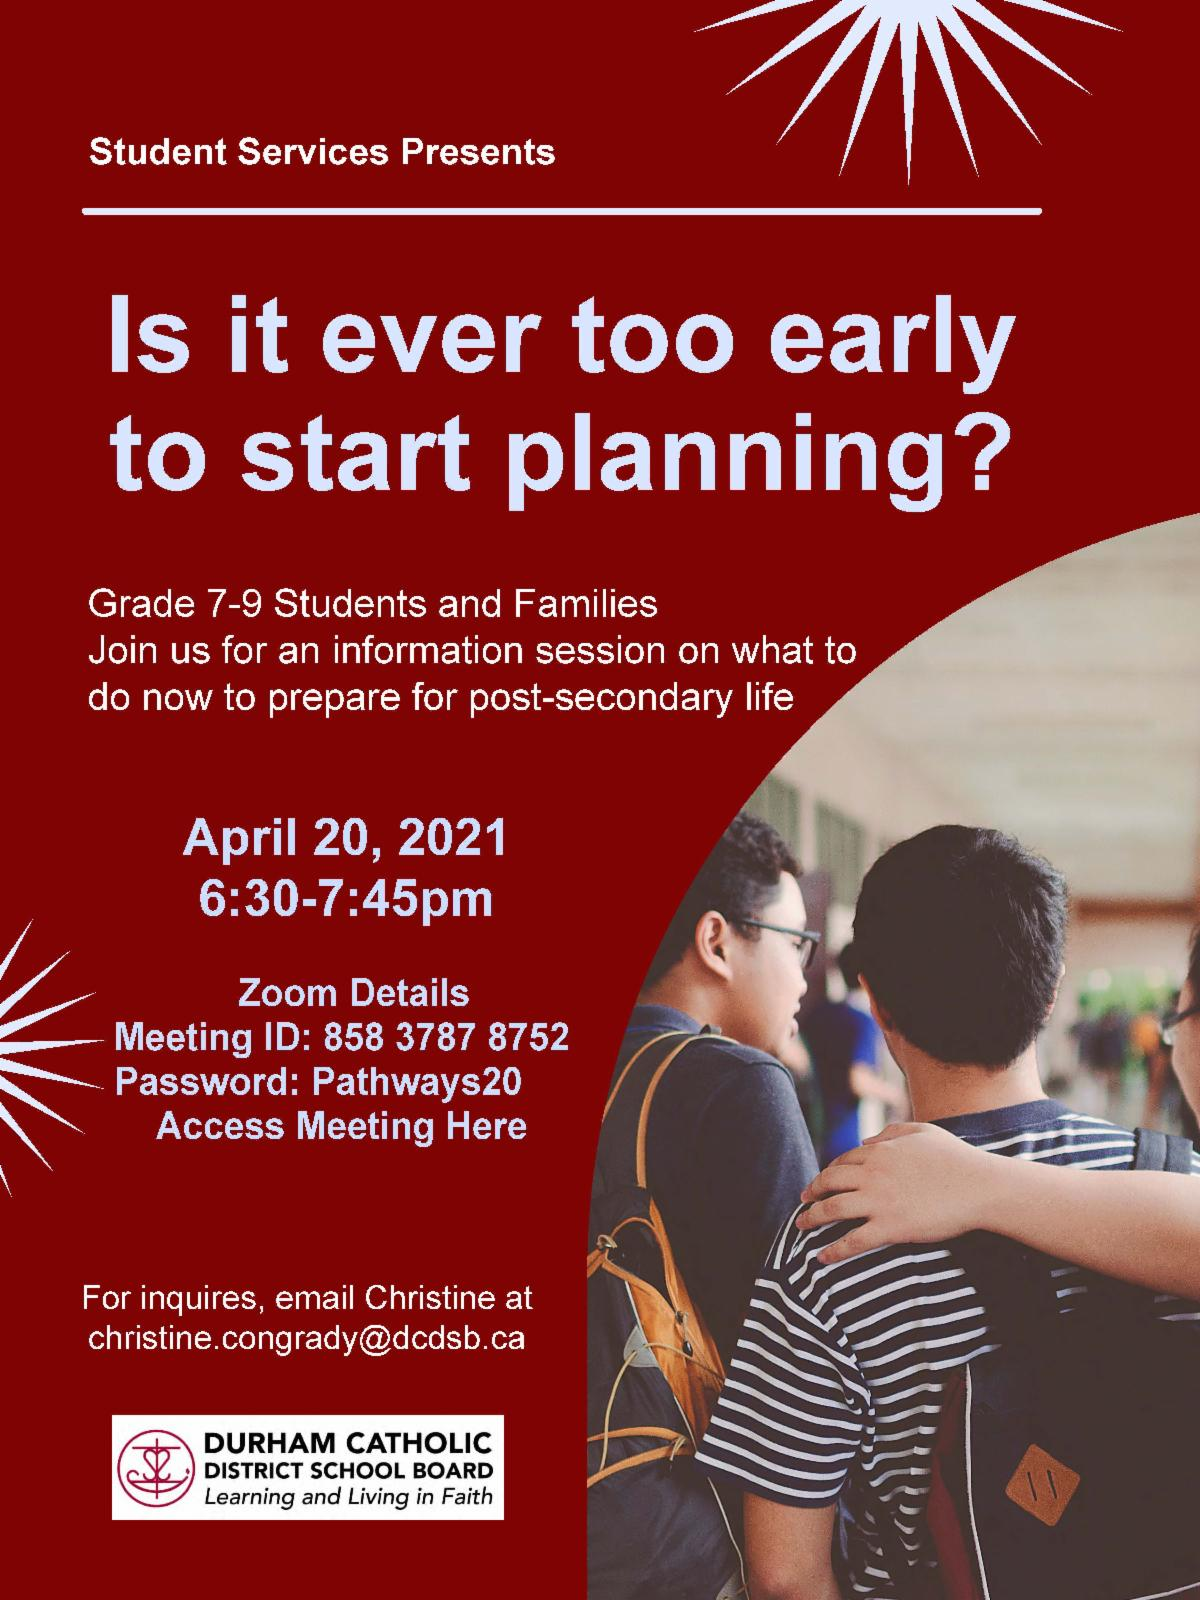 Poster promoting Is It Ever Too Early To Start Planning?